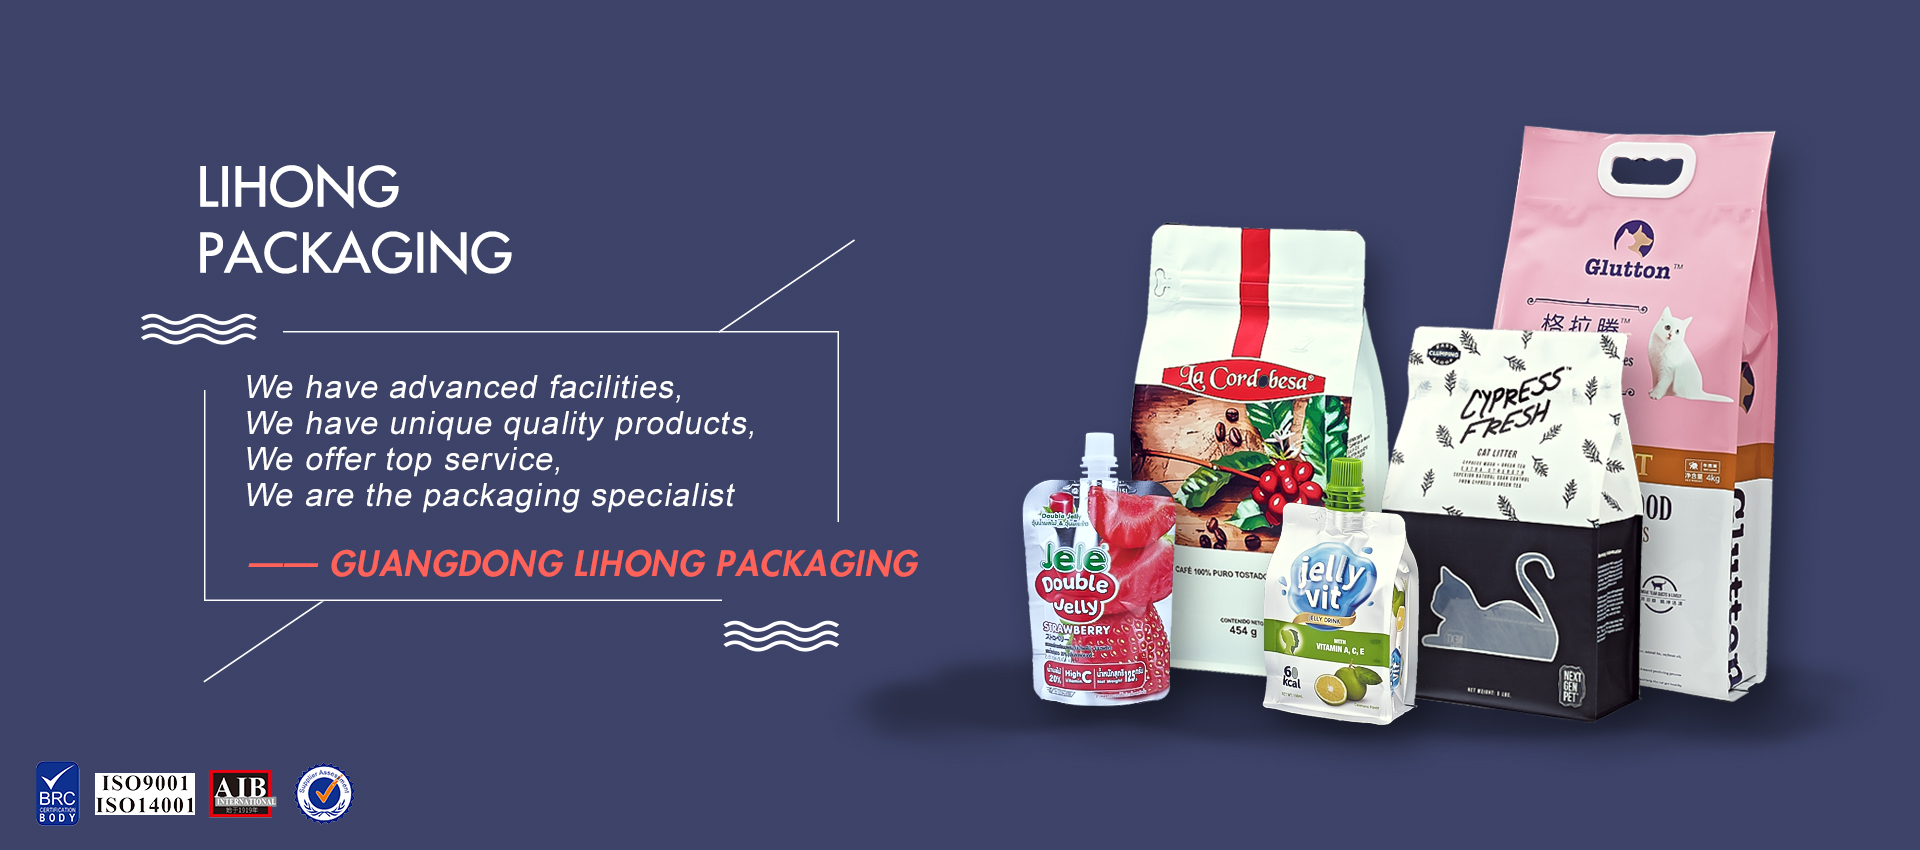 LIHONG PACKAGING